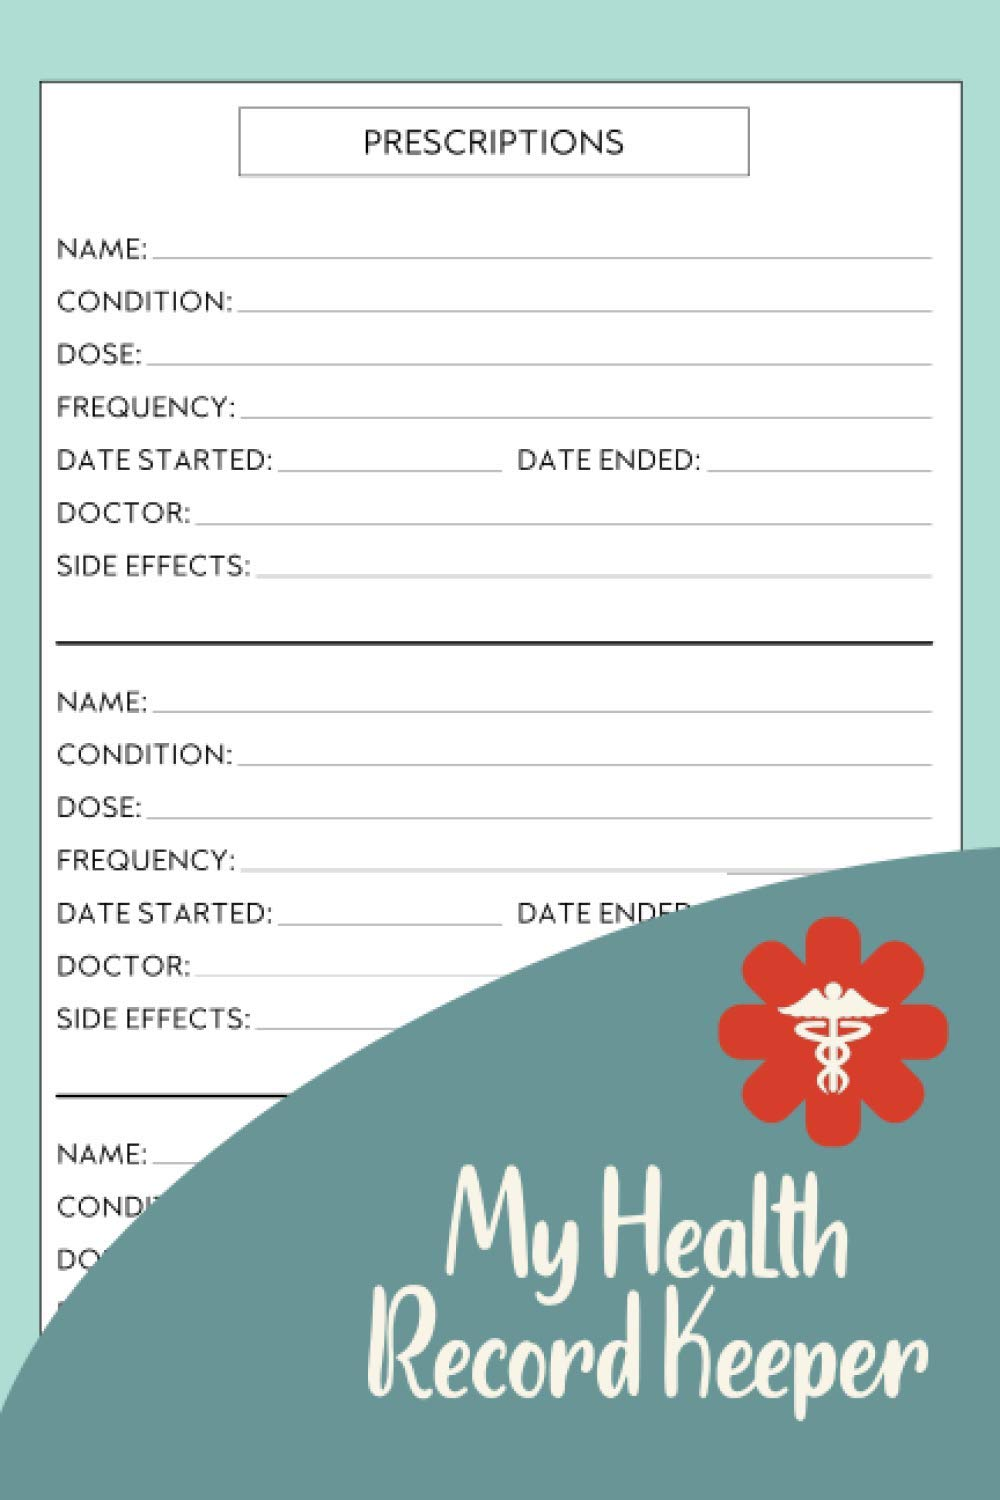 My Health Record Keeper: Organizer To Track Personal Medical History,  Medication, Doctor Visits And Much More. Health Management Log Book: Maggie  Nguyen: 9798560131753: Amazon.com: Books